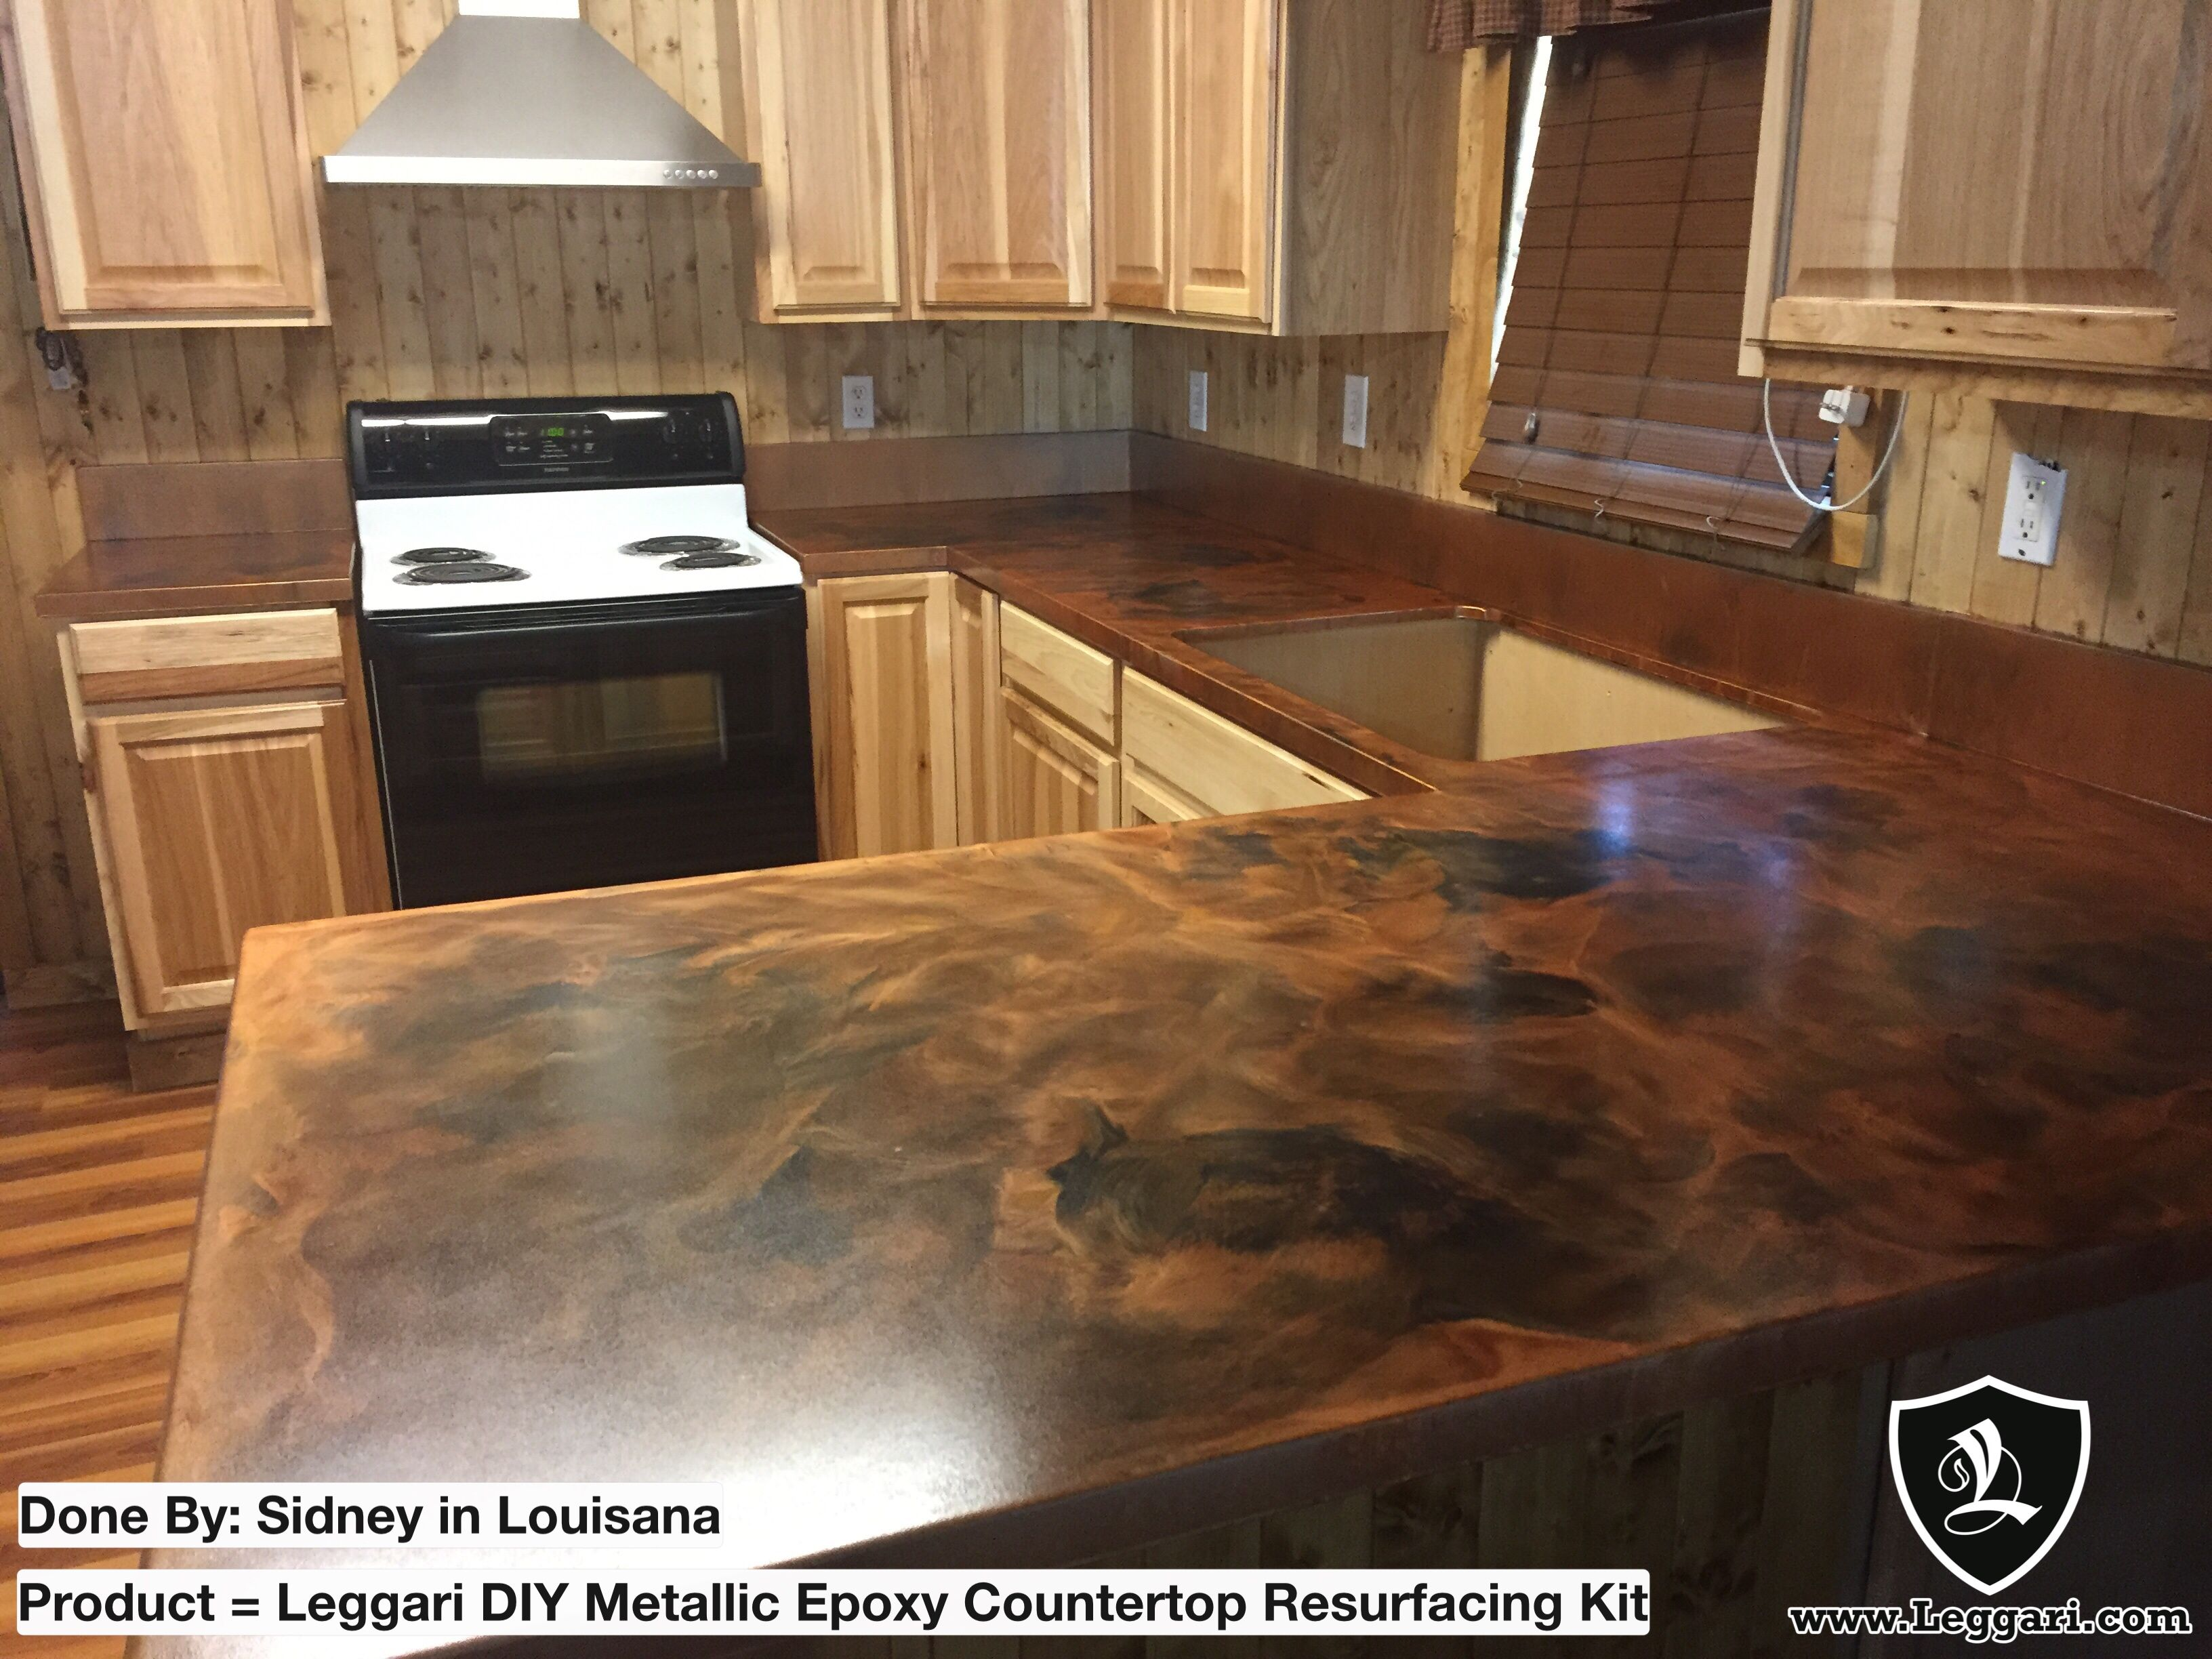 Epoxy Countertop Kit Base Brass Highlights Black Coffee Orange Gold Re Create Your Kitchen Using Epoxy Countertop Countertop Kit Epoxy Countertop Kit